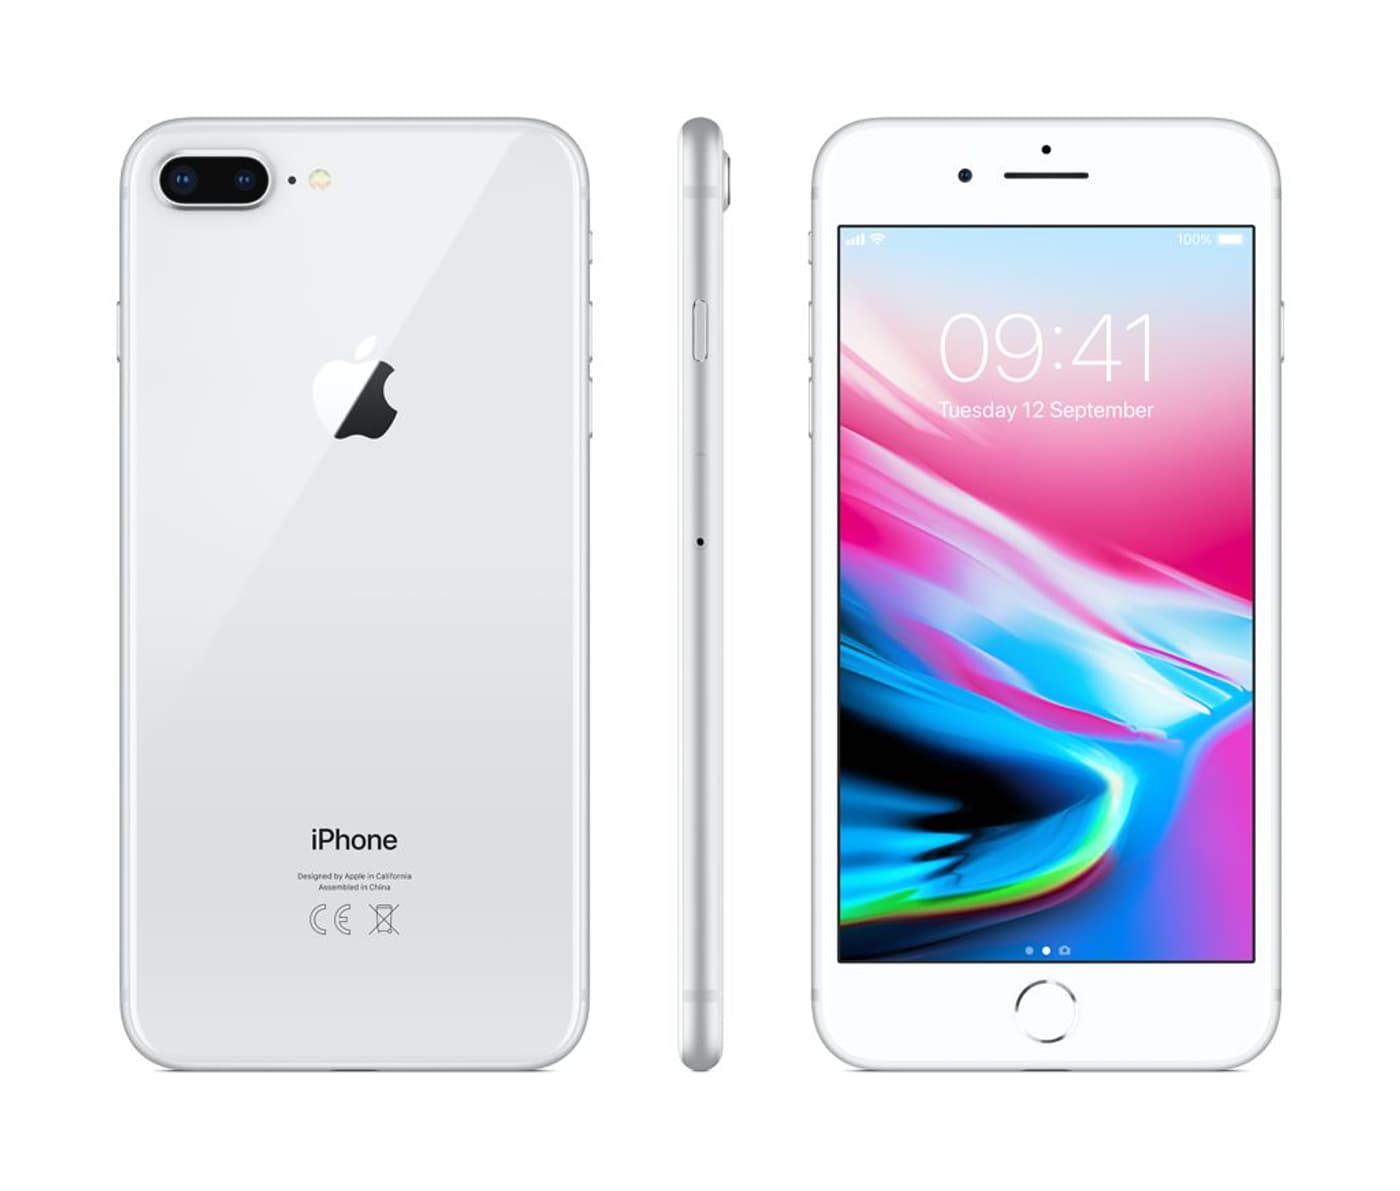 apple iphone 8 plus 256gb silber smartphone migros. Black Bedroom Furniture Sets. Home Design Ideas